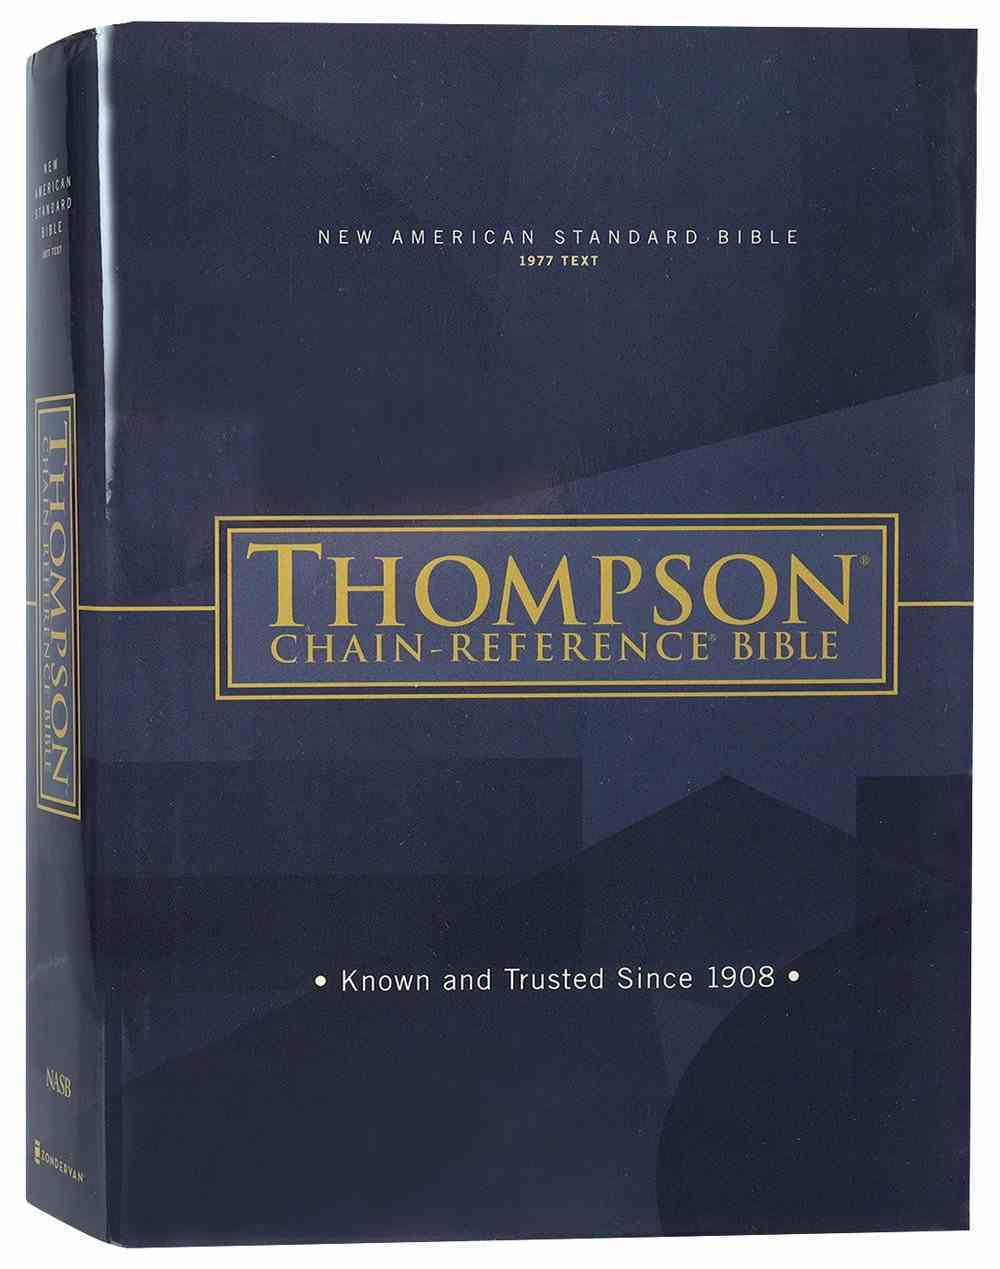 NASB Thompson Chain-Reference Bible 1977 Text (Red Letter Edition) Hardback